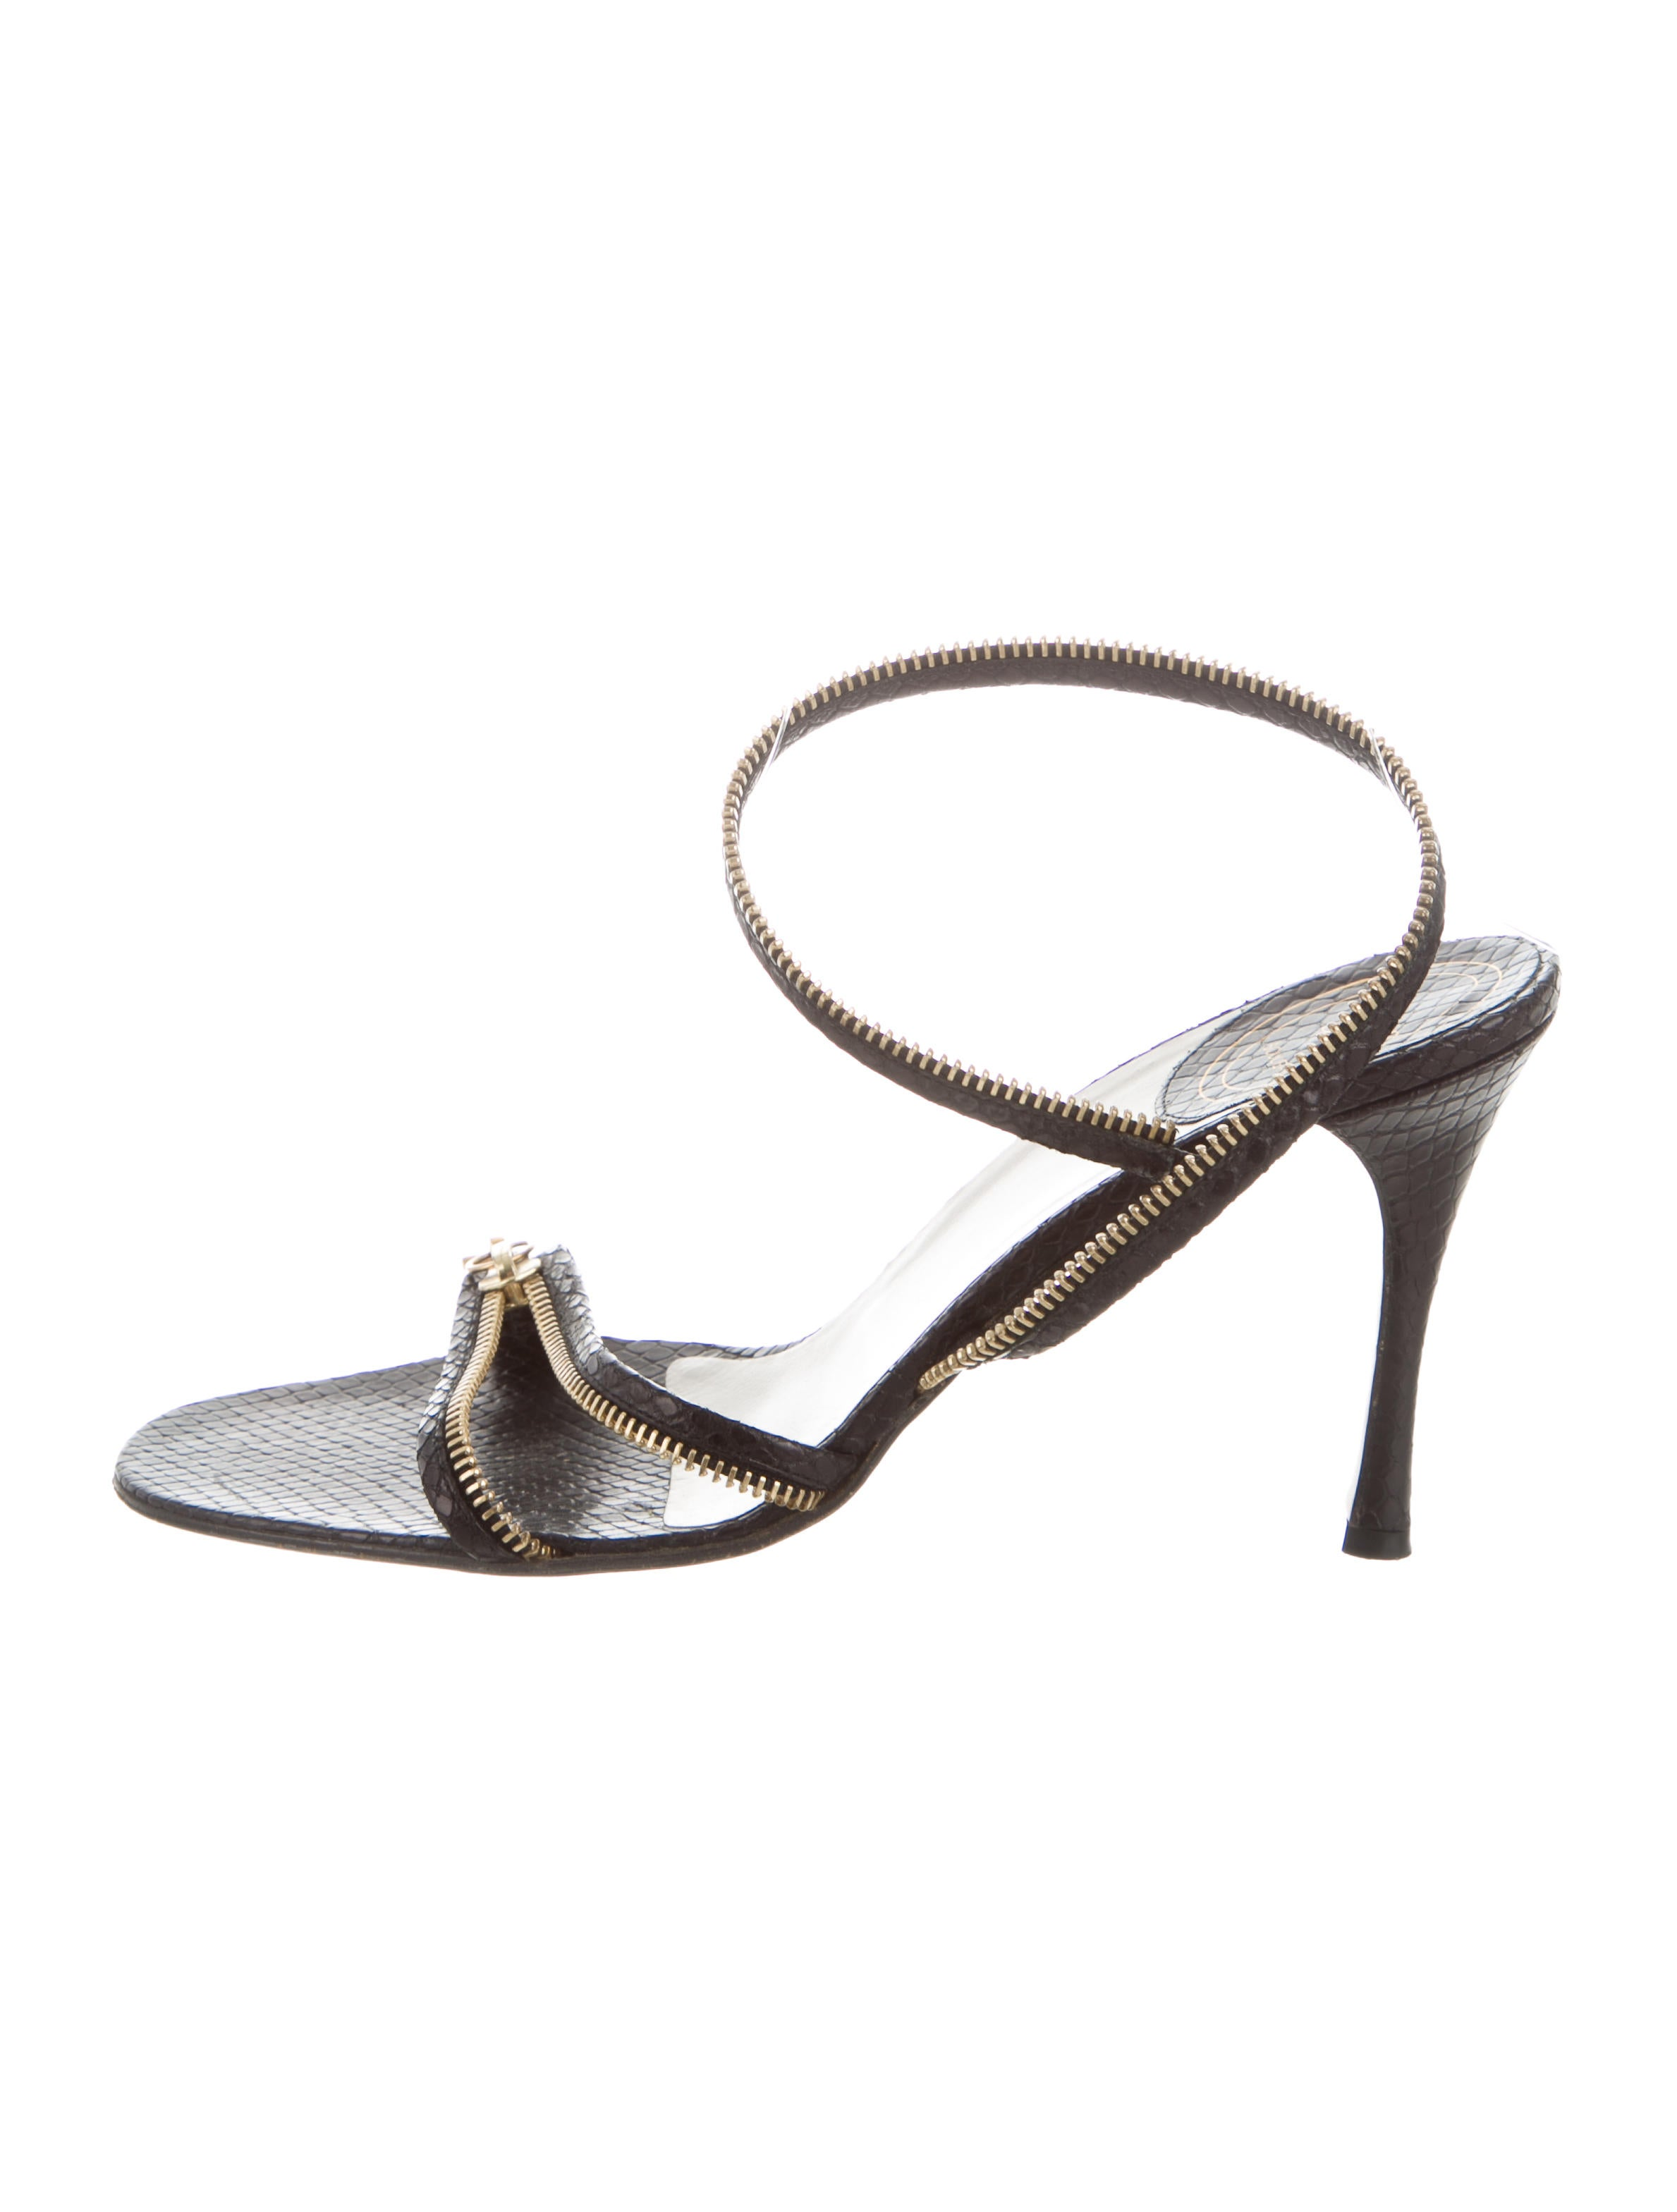 Christian Dior Embossed Zip-Accented Sandals discount brand new unisex hot sale cheap price cheapest price online td7G4BC4J3